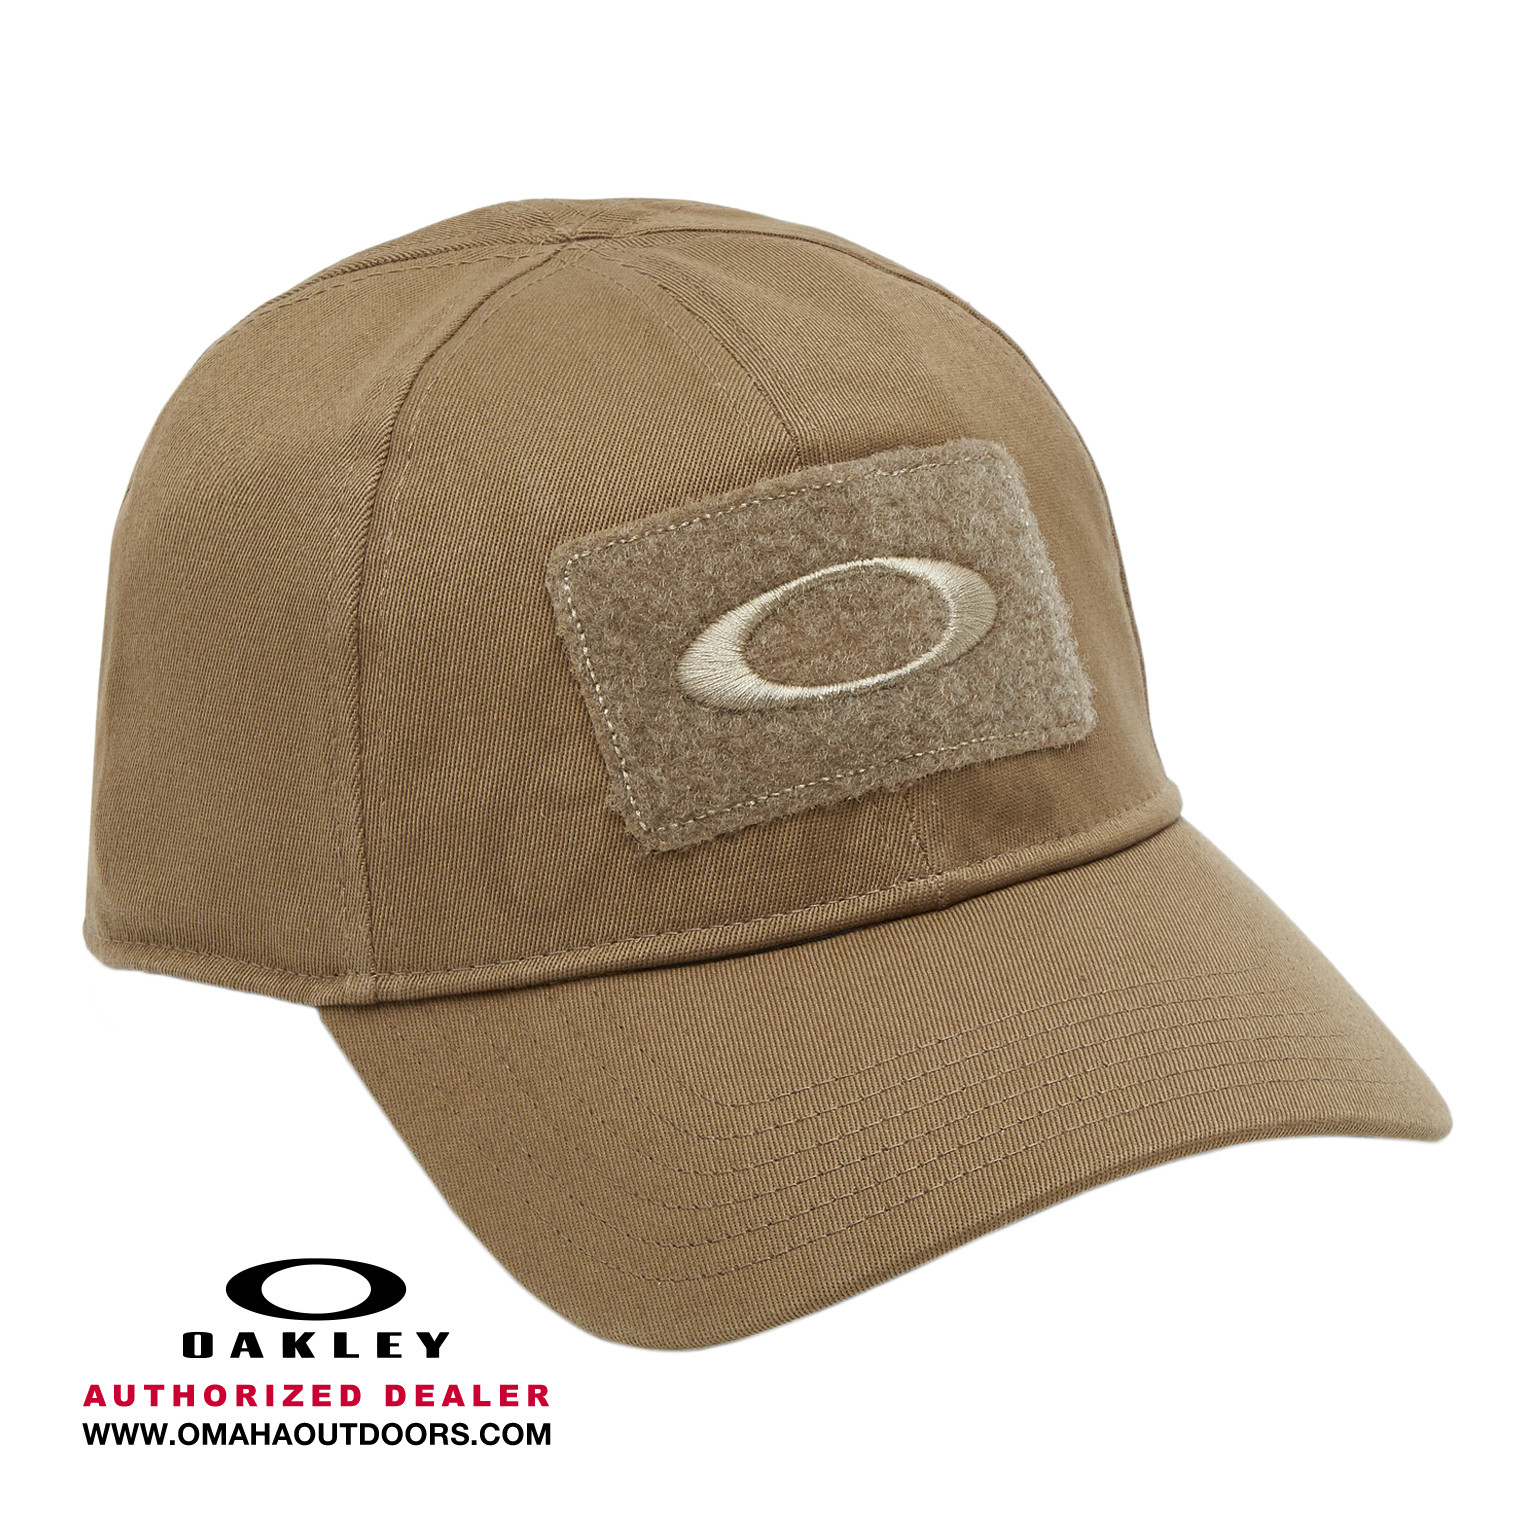 Oakley Standard Issue Cotton Hat 911630 - Omaha Outdoors